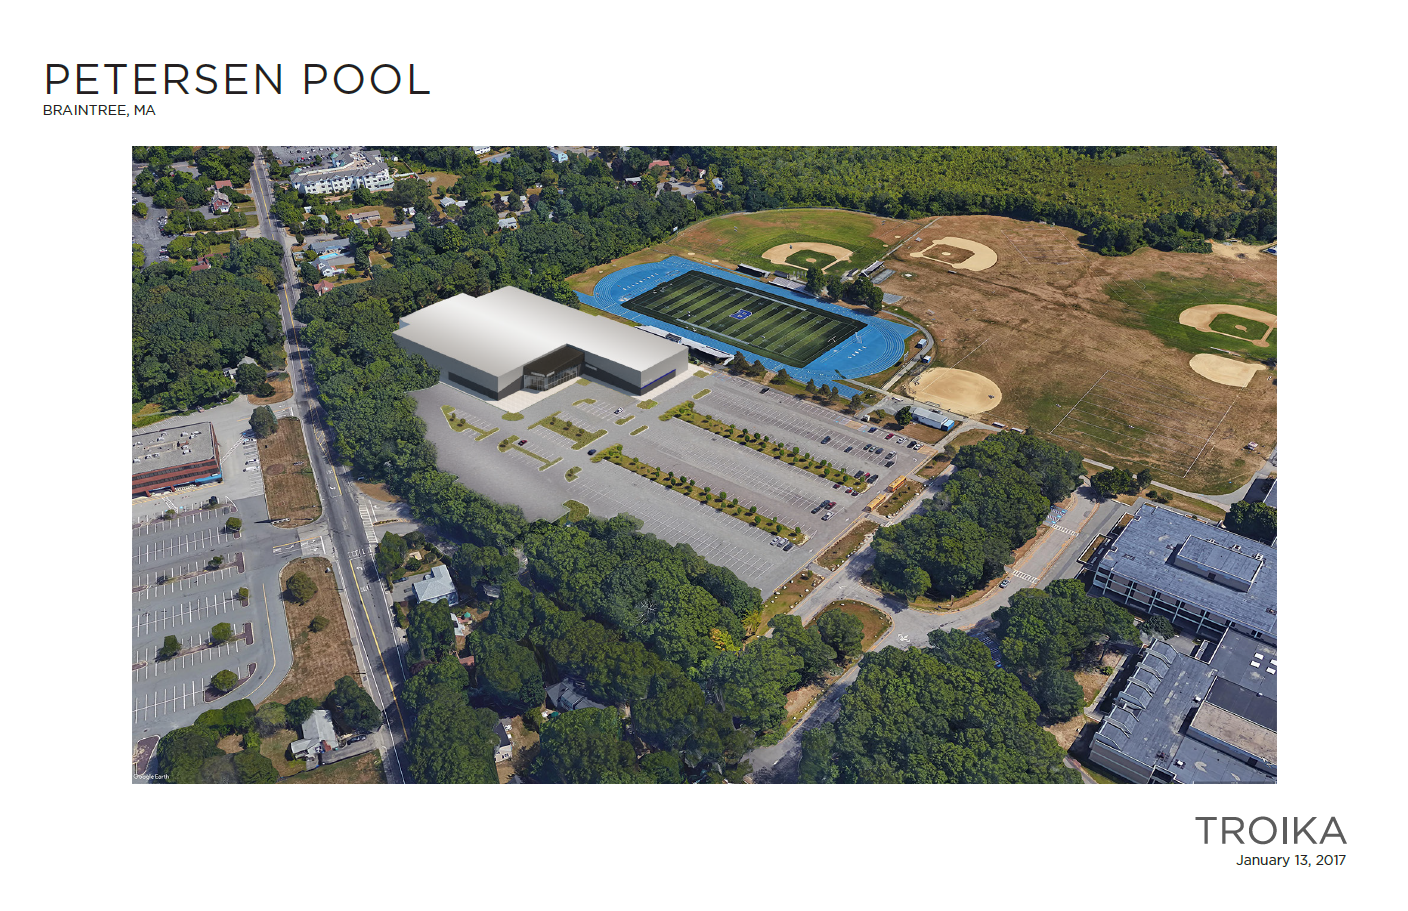 Overhead bird eye's view of the Petersen Pool